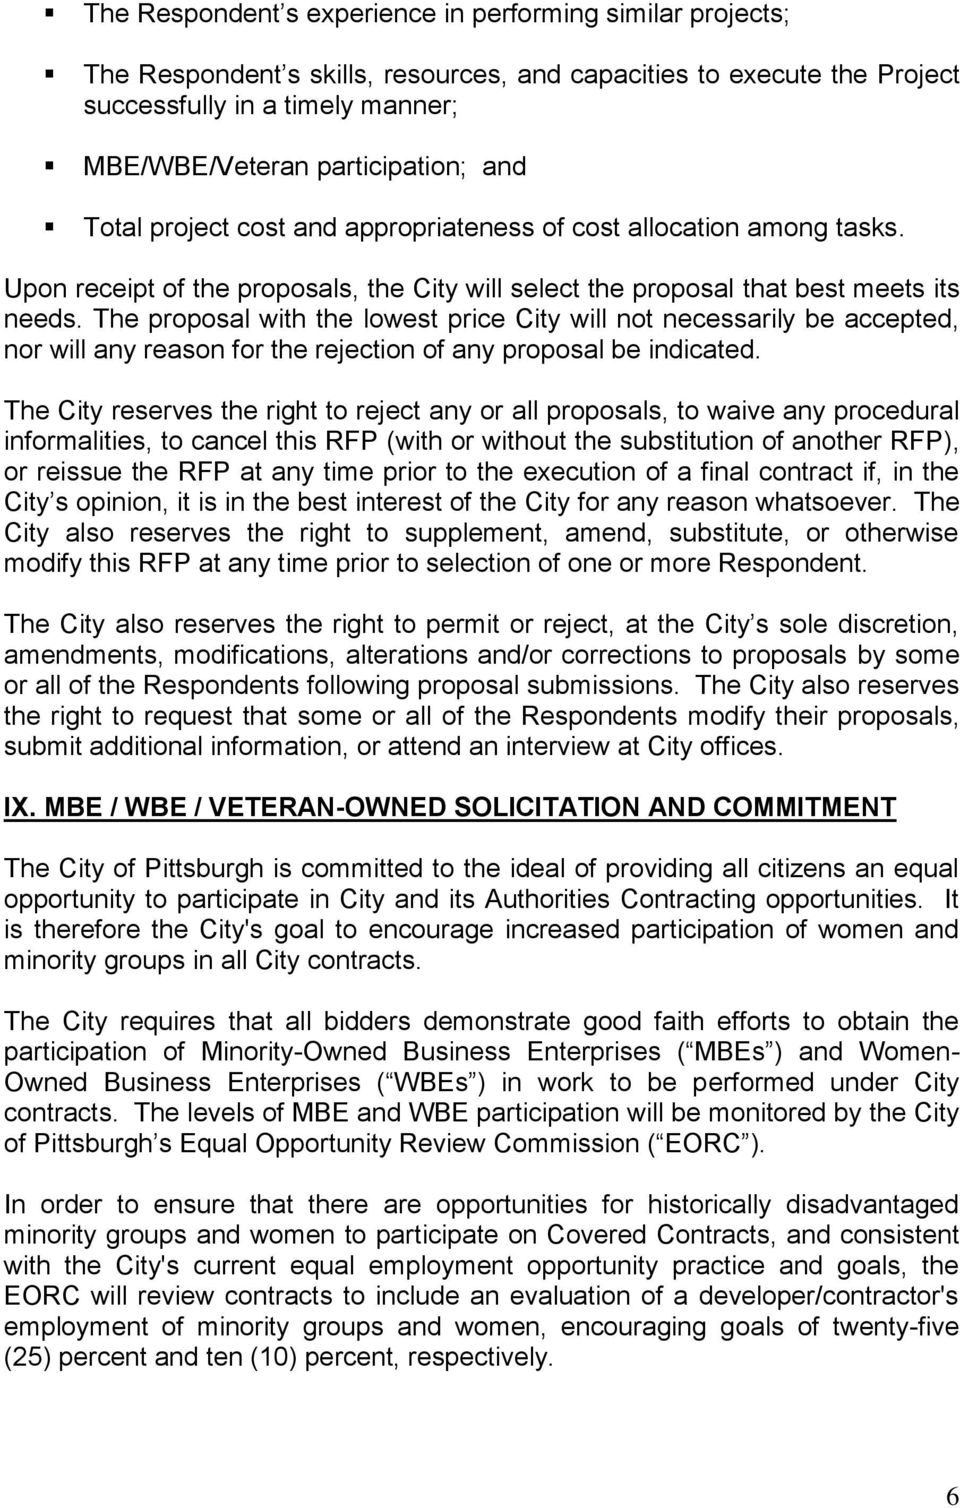 The proposal with the lowest price City will not necessarily be accepted, nor will any reason for the rejection of any proposal be indicated.